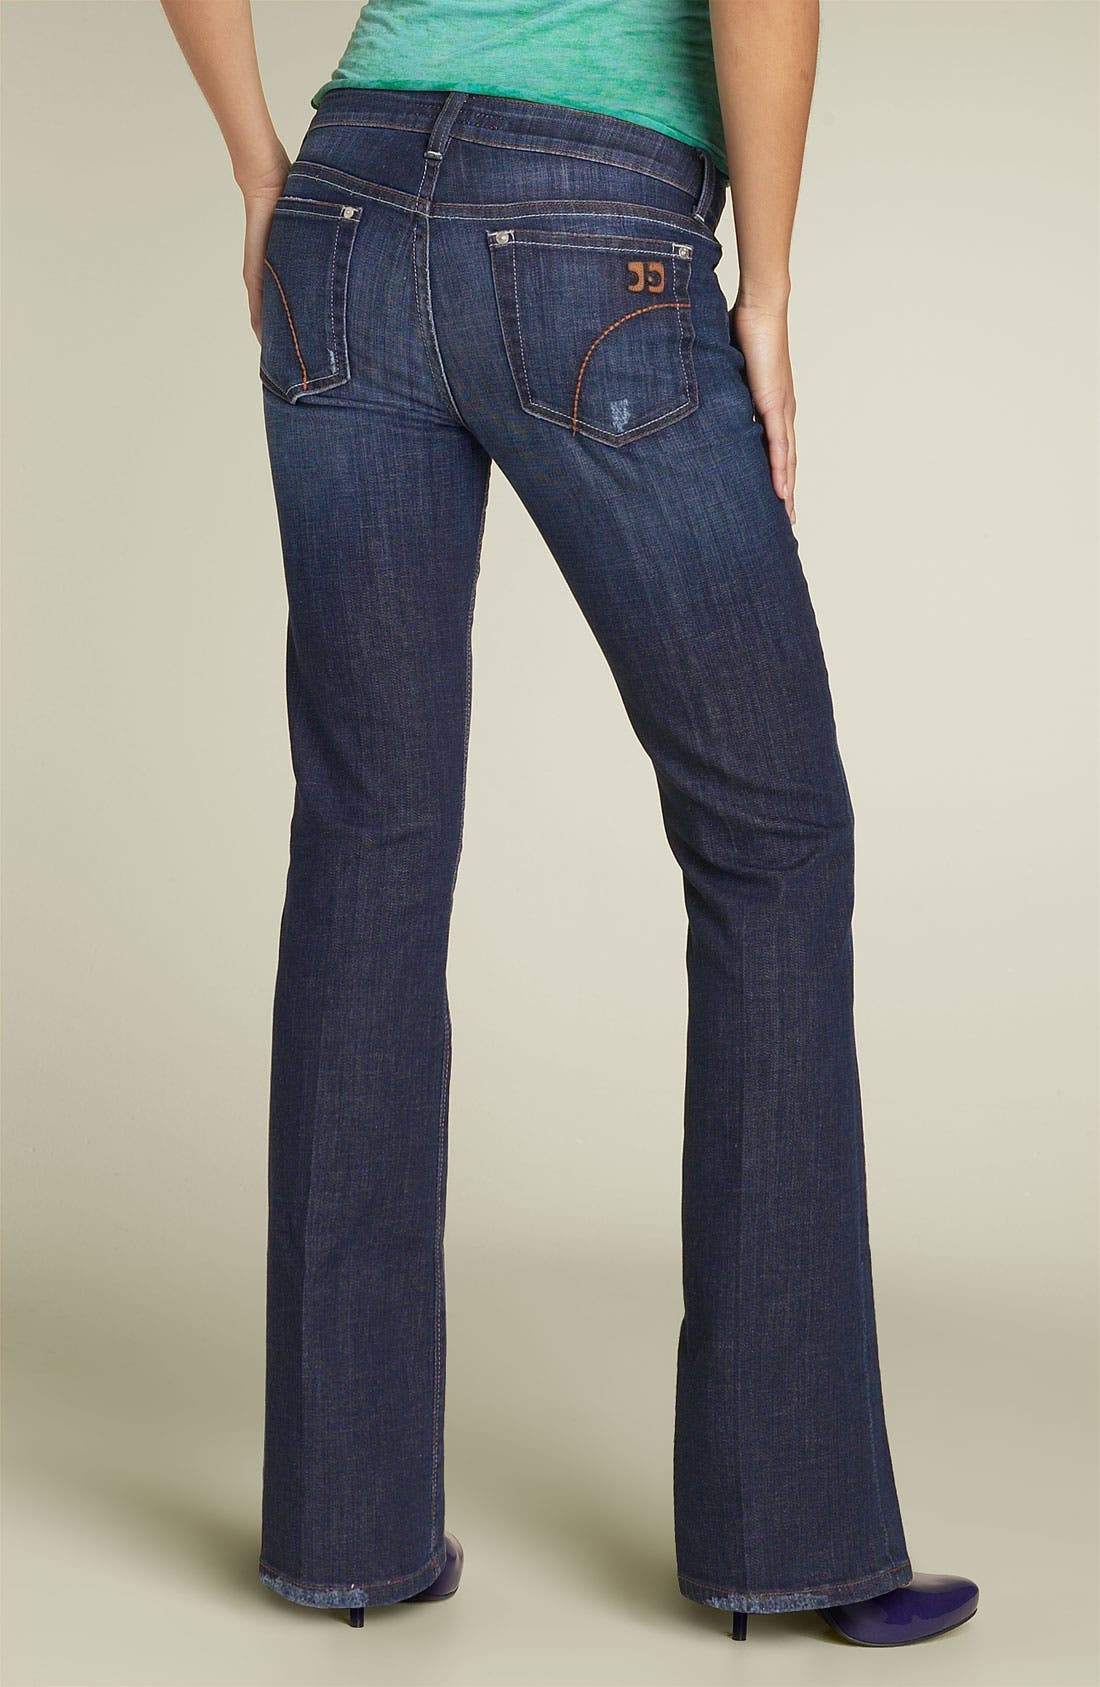 Main Image - Joe's Jeans 'Honey' Curvy Fit Stretch Jeans (Ryder Wash)